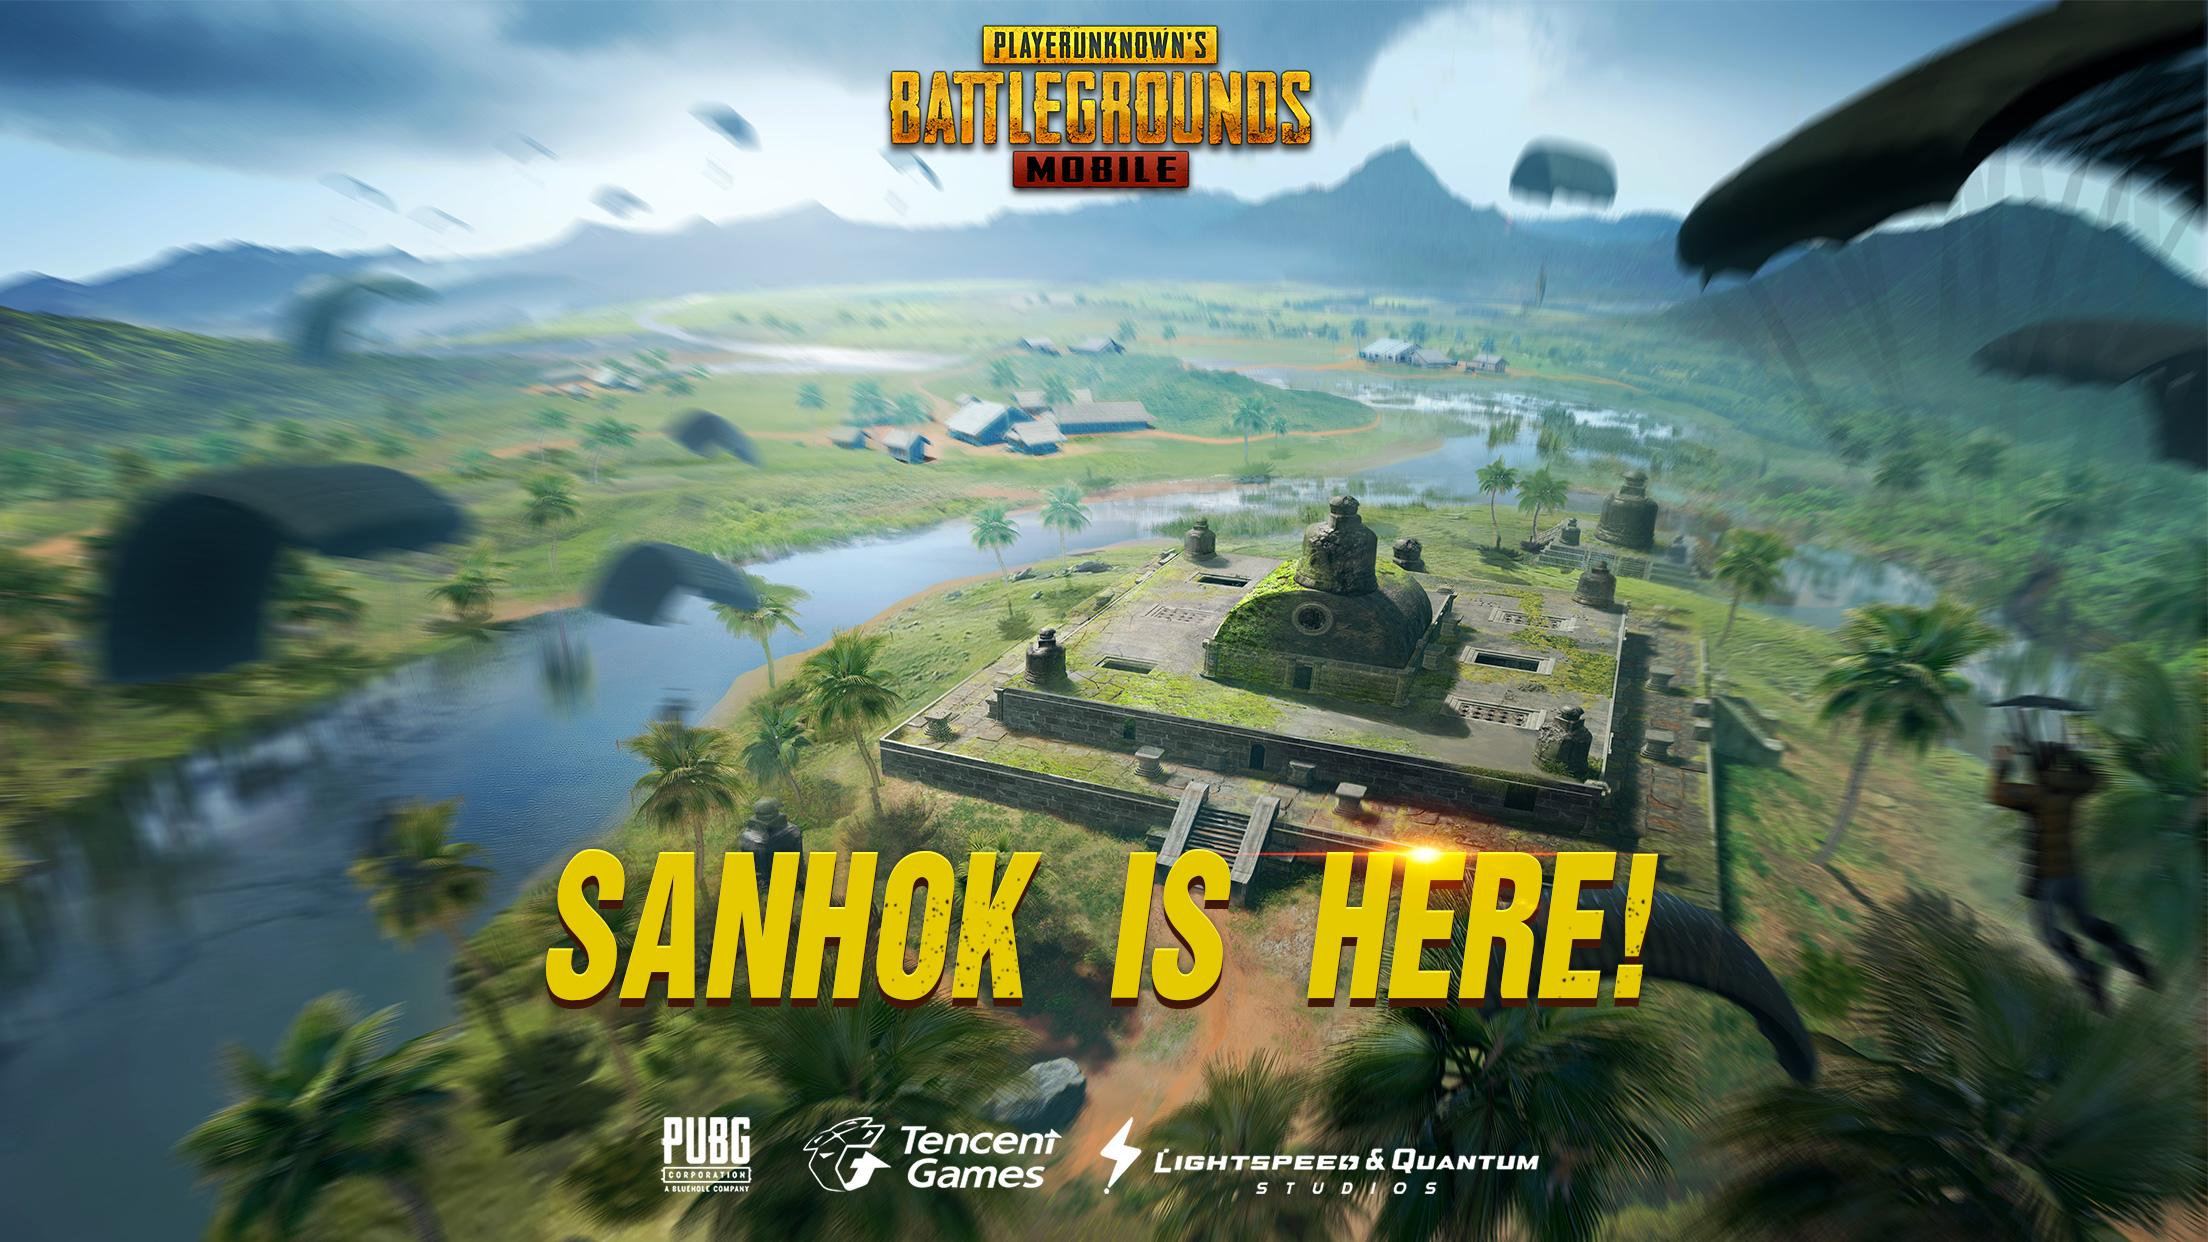 Download Pubg 1 Wallpapers To Your Cell Phone: PUBG Mobile V0.8.0 Adds Sanhok Map, New Vehicles, And More